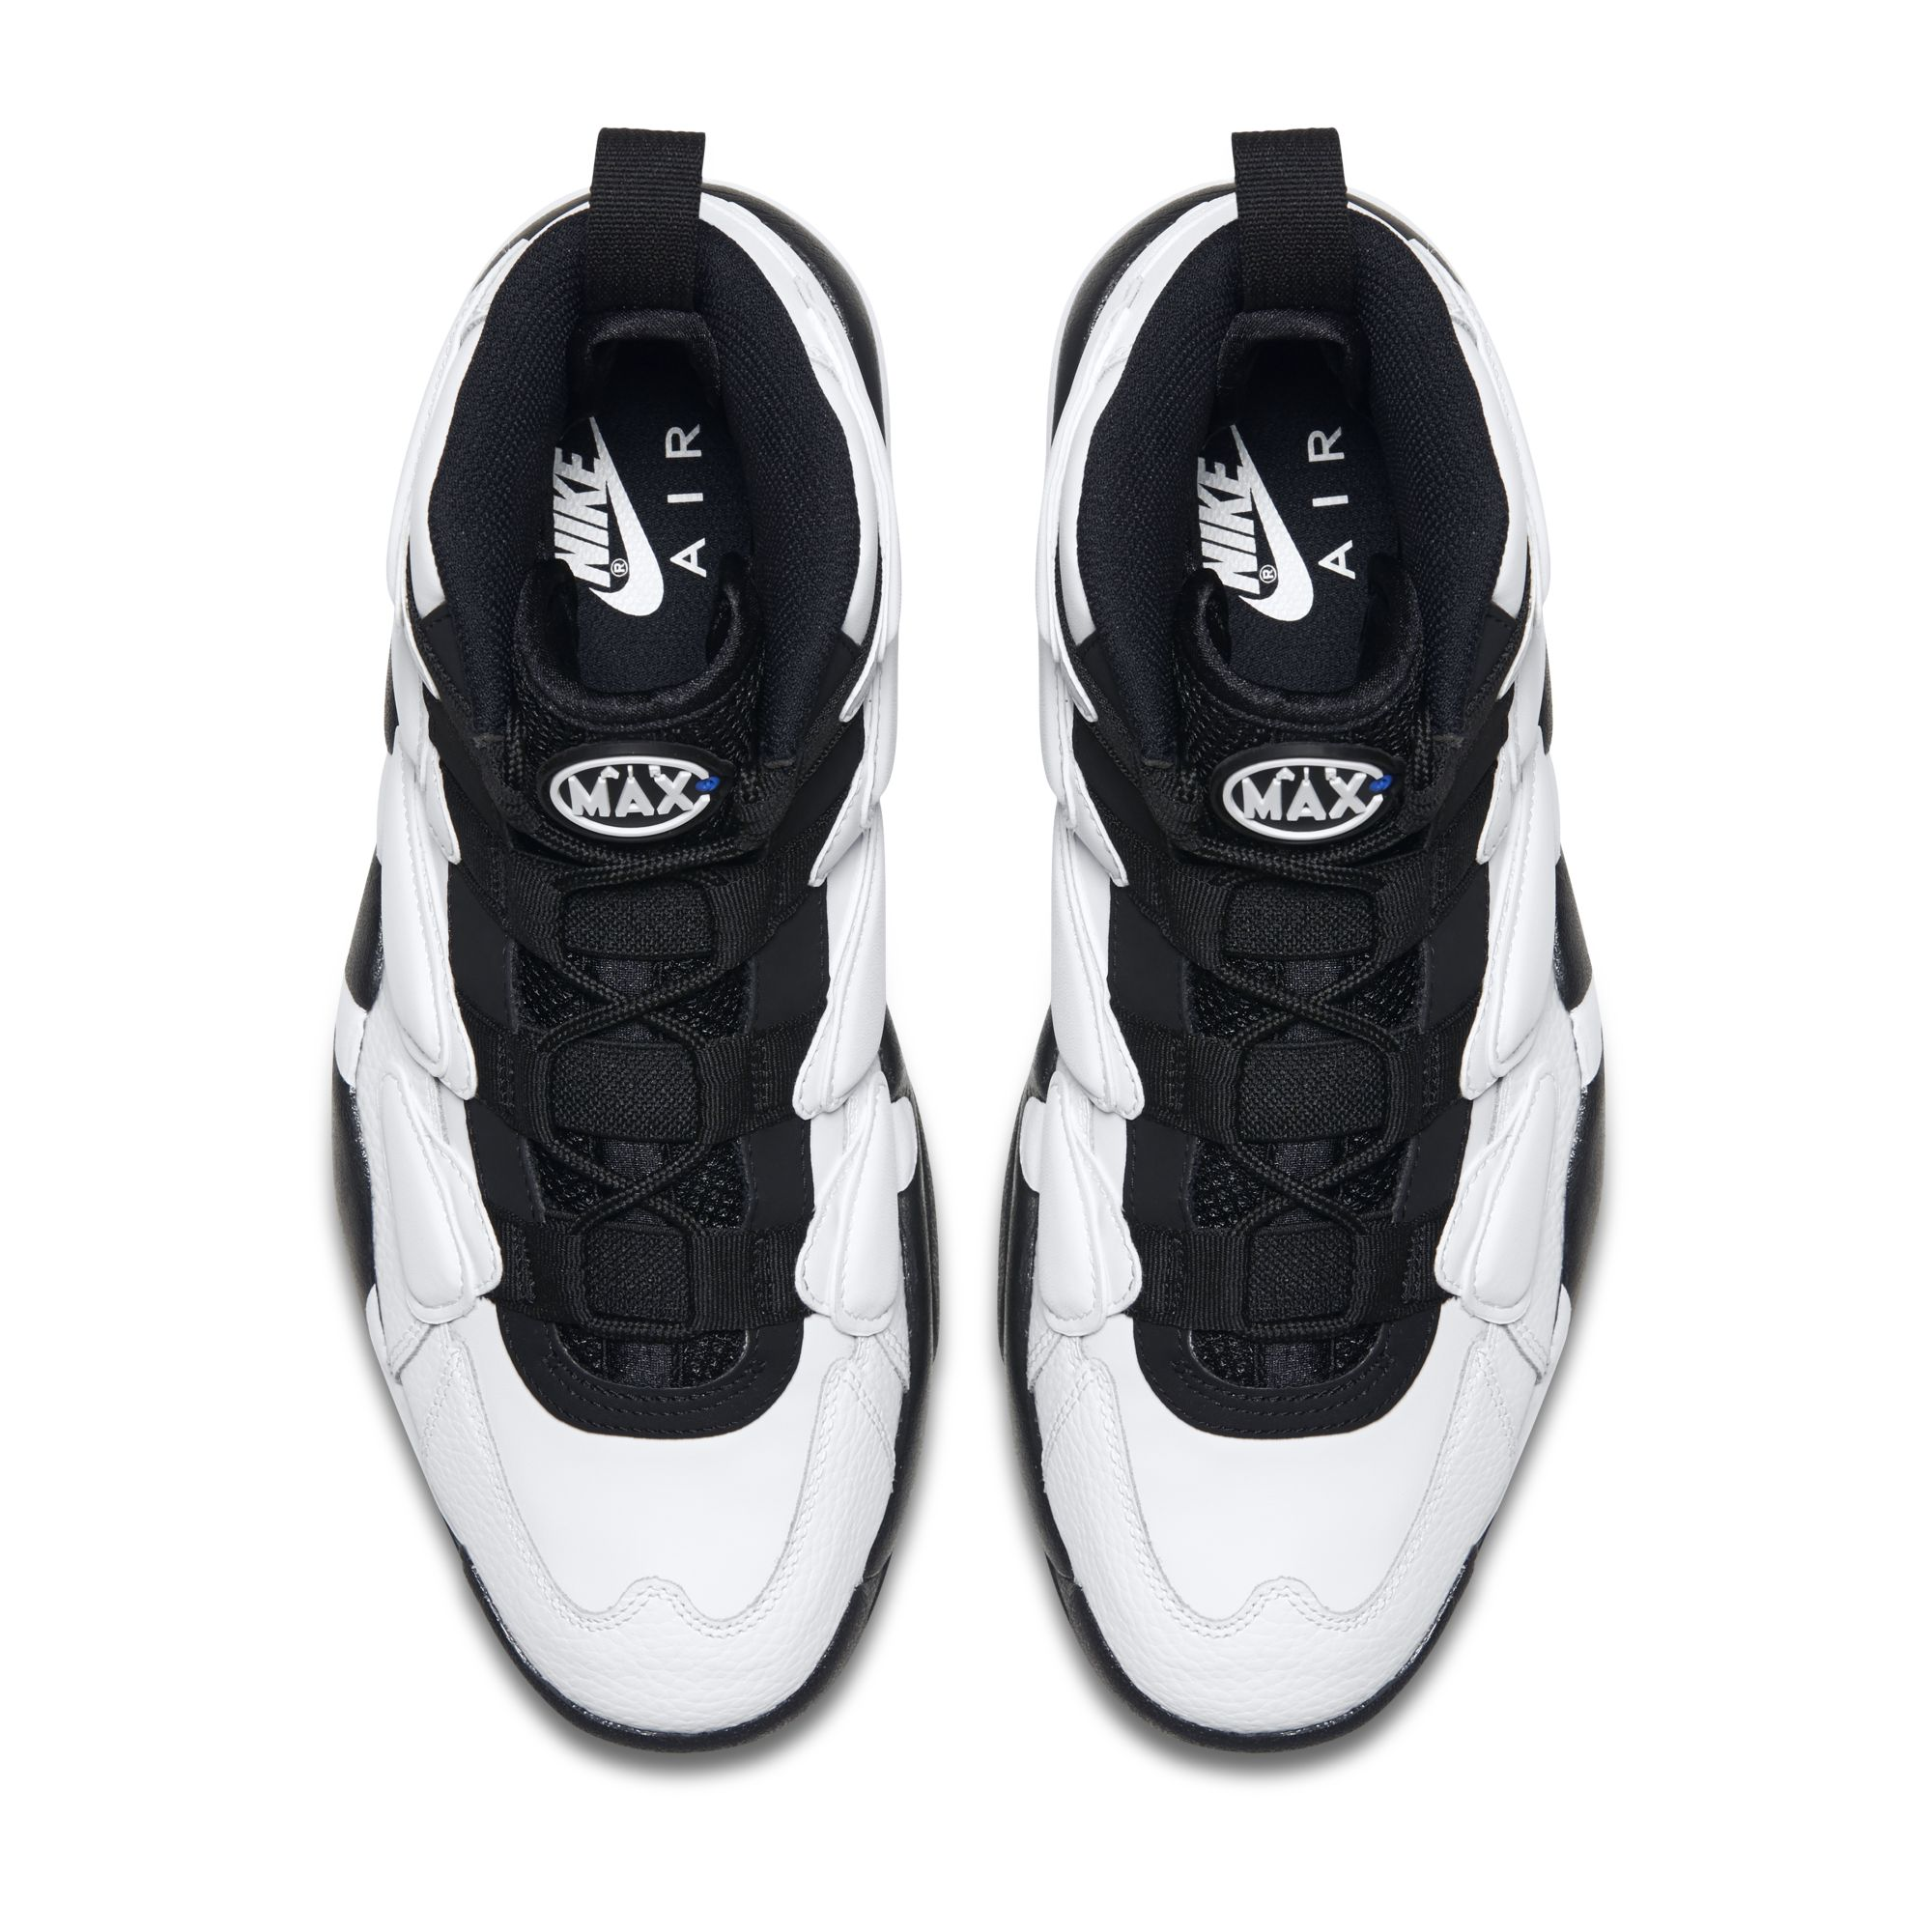 low priced 5cf31 5fc32 ... 11 M US; NIKE AIR MAX2 UPTEMPO white black 3 ...